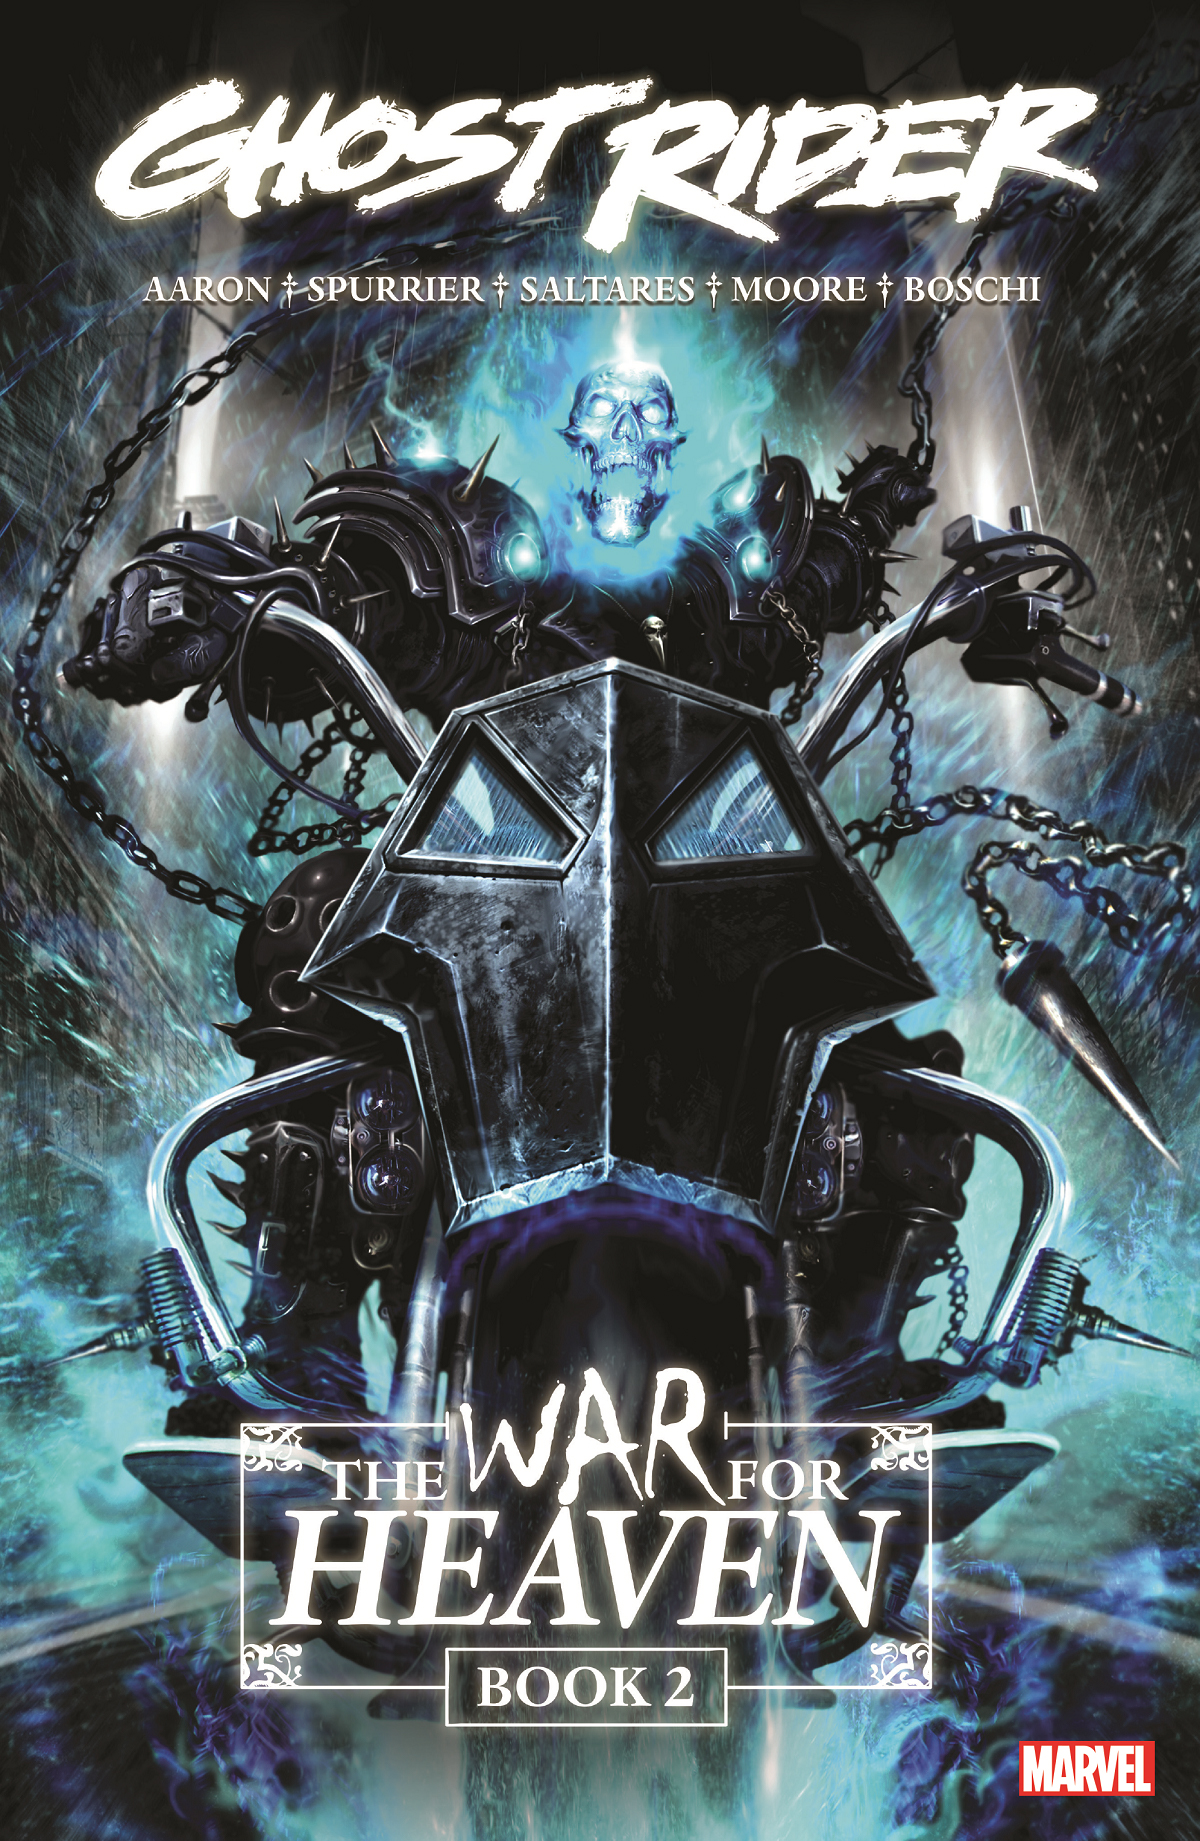 Ghost Rider: The War For Heaven Book 2 (Trade Paperback)